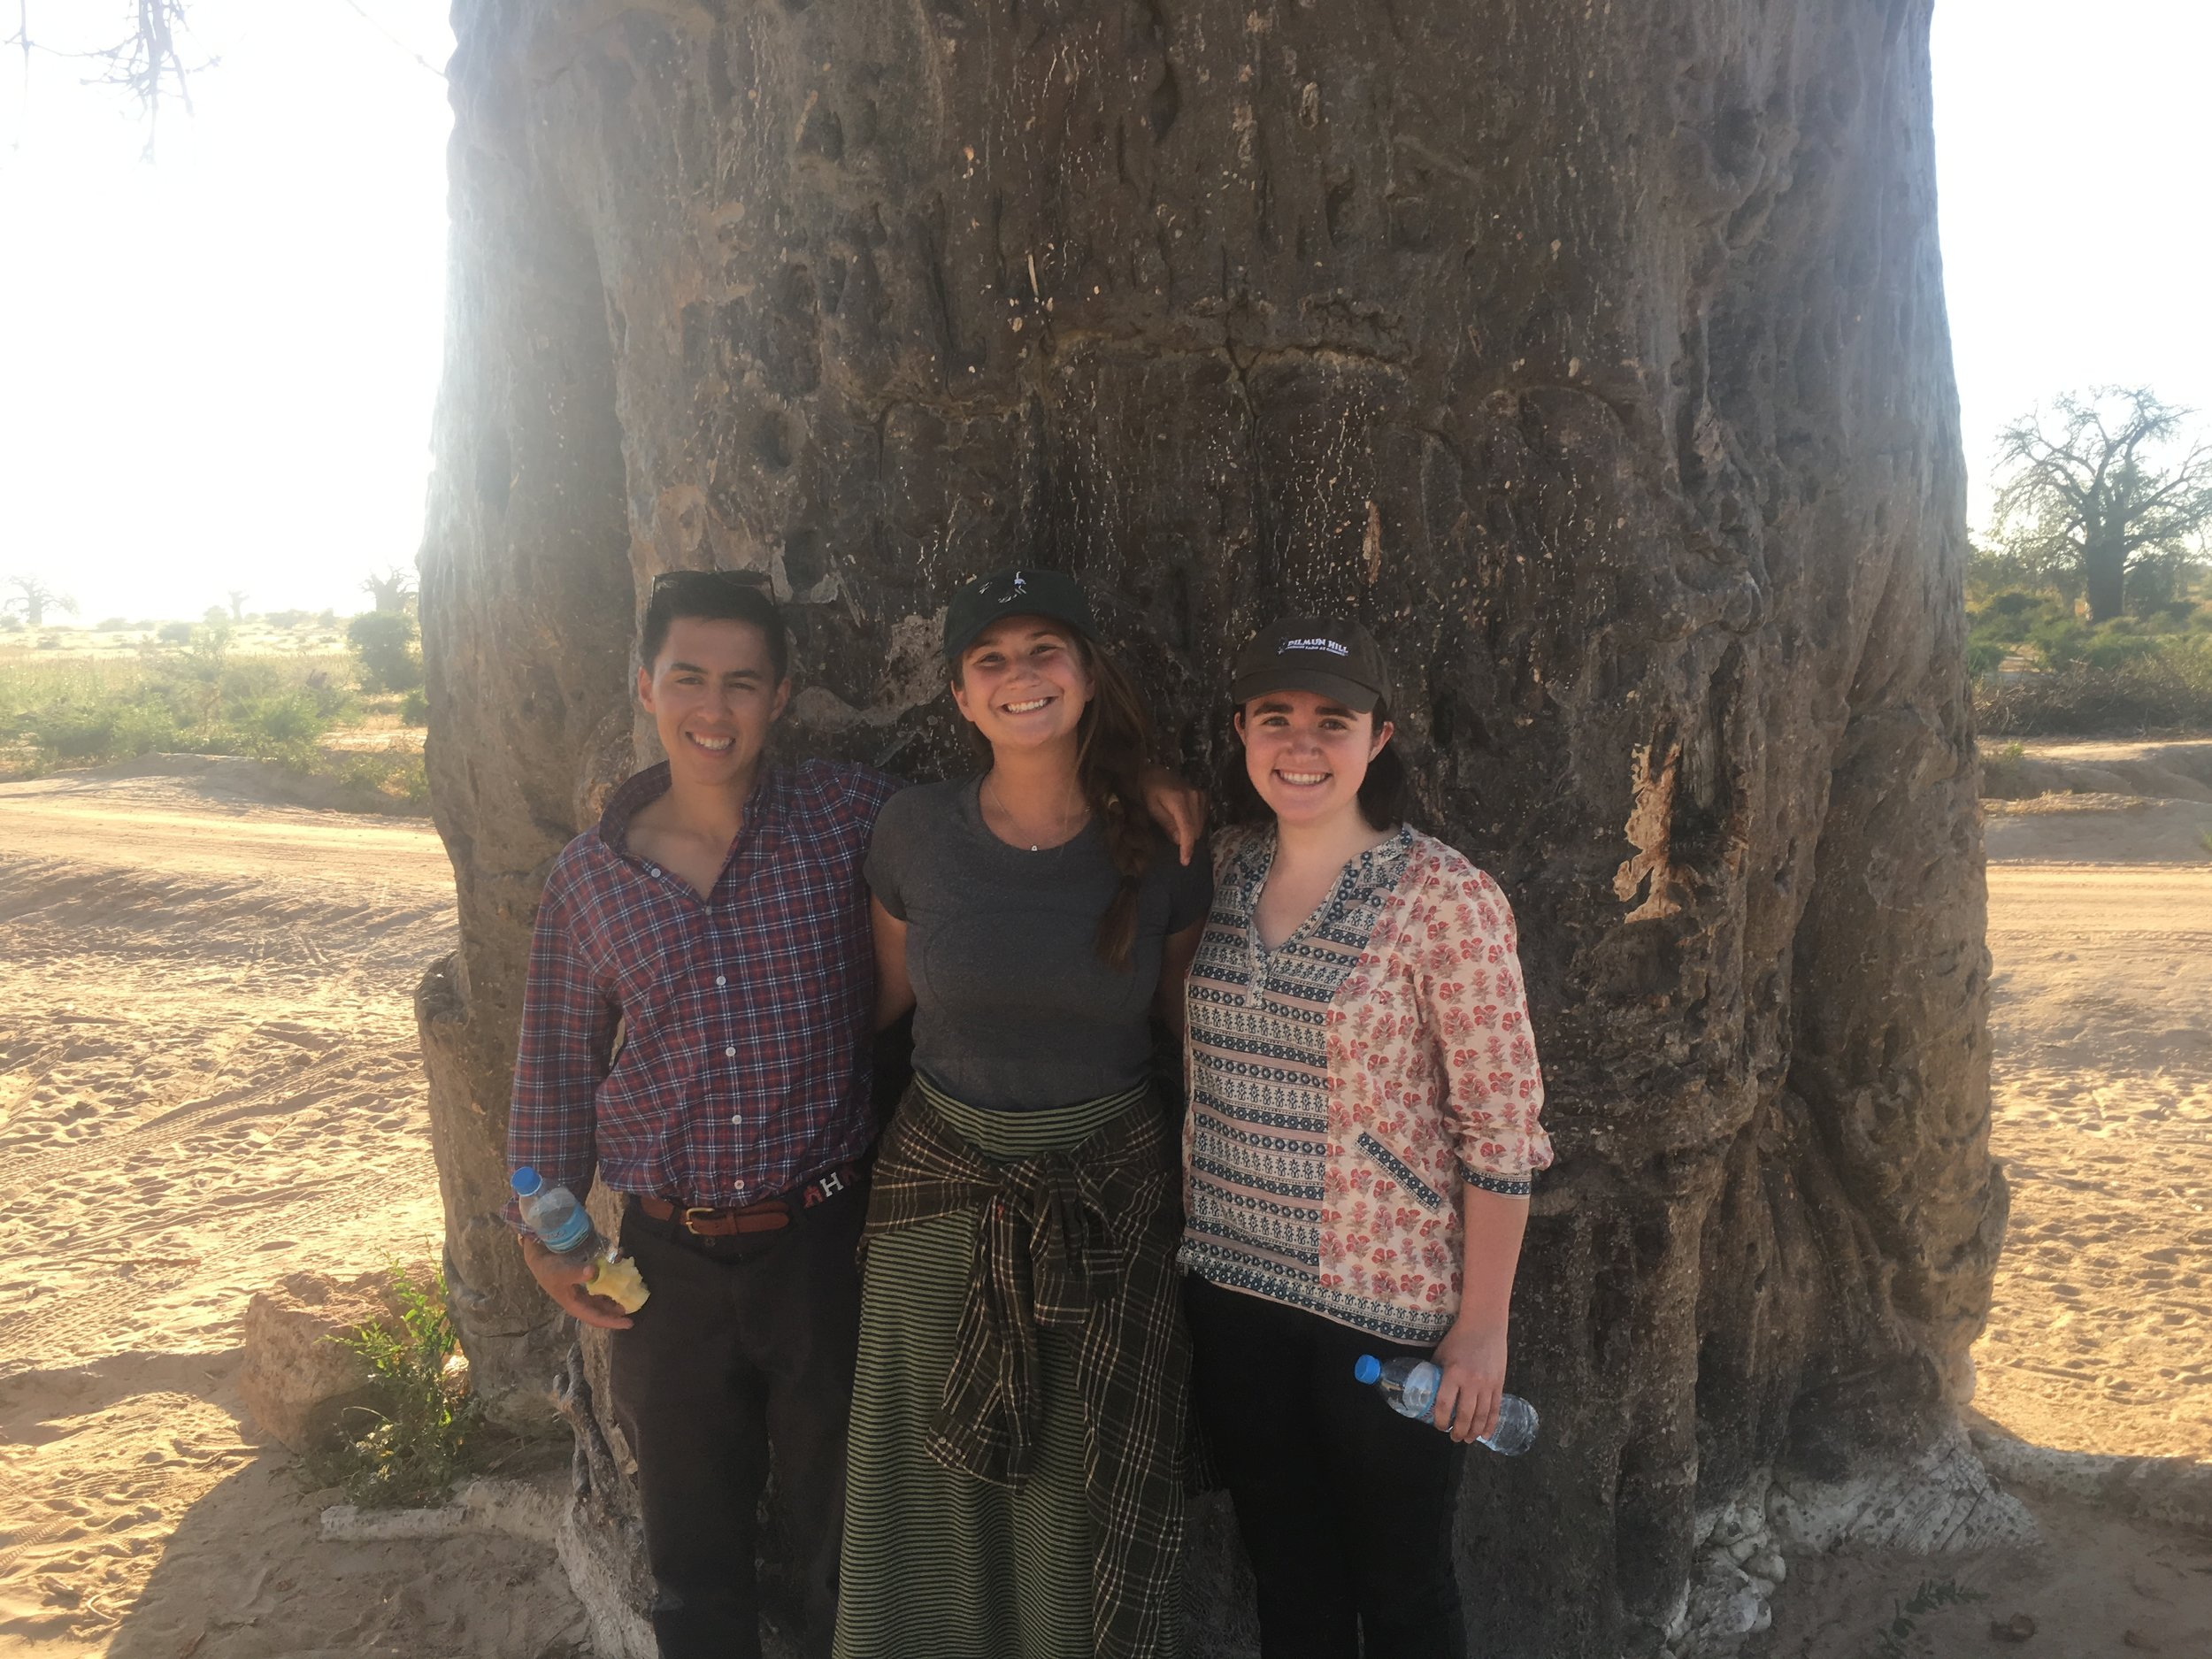 Visual reference of Katie and Xavier as we pose together in front of a gloriously thick Baobab tree.